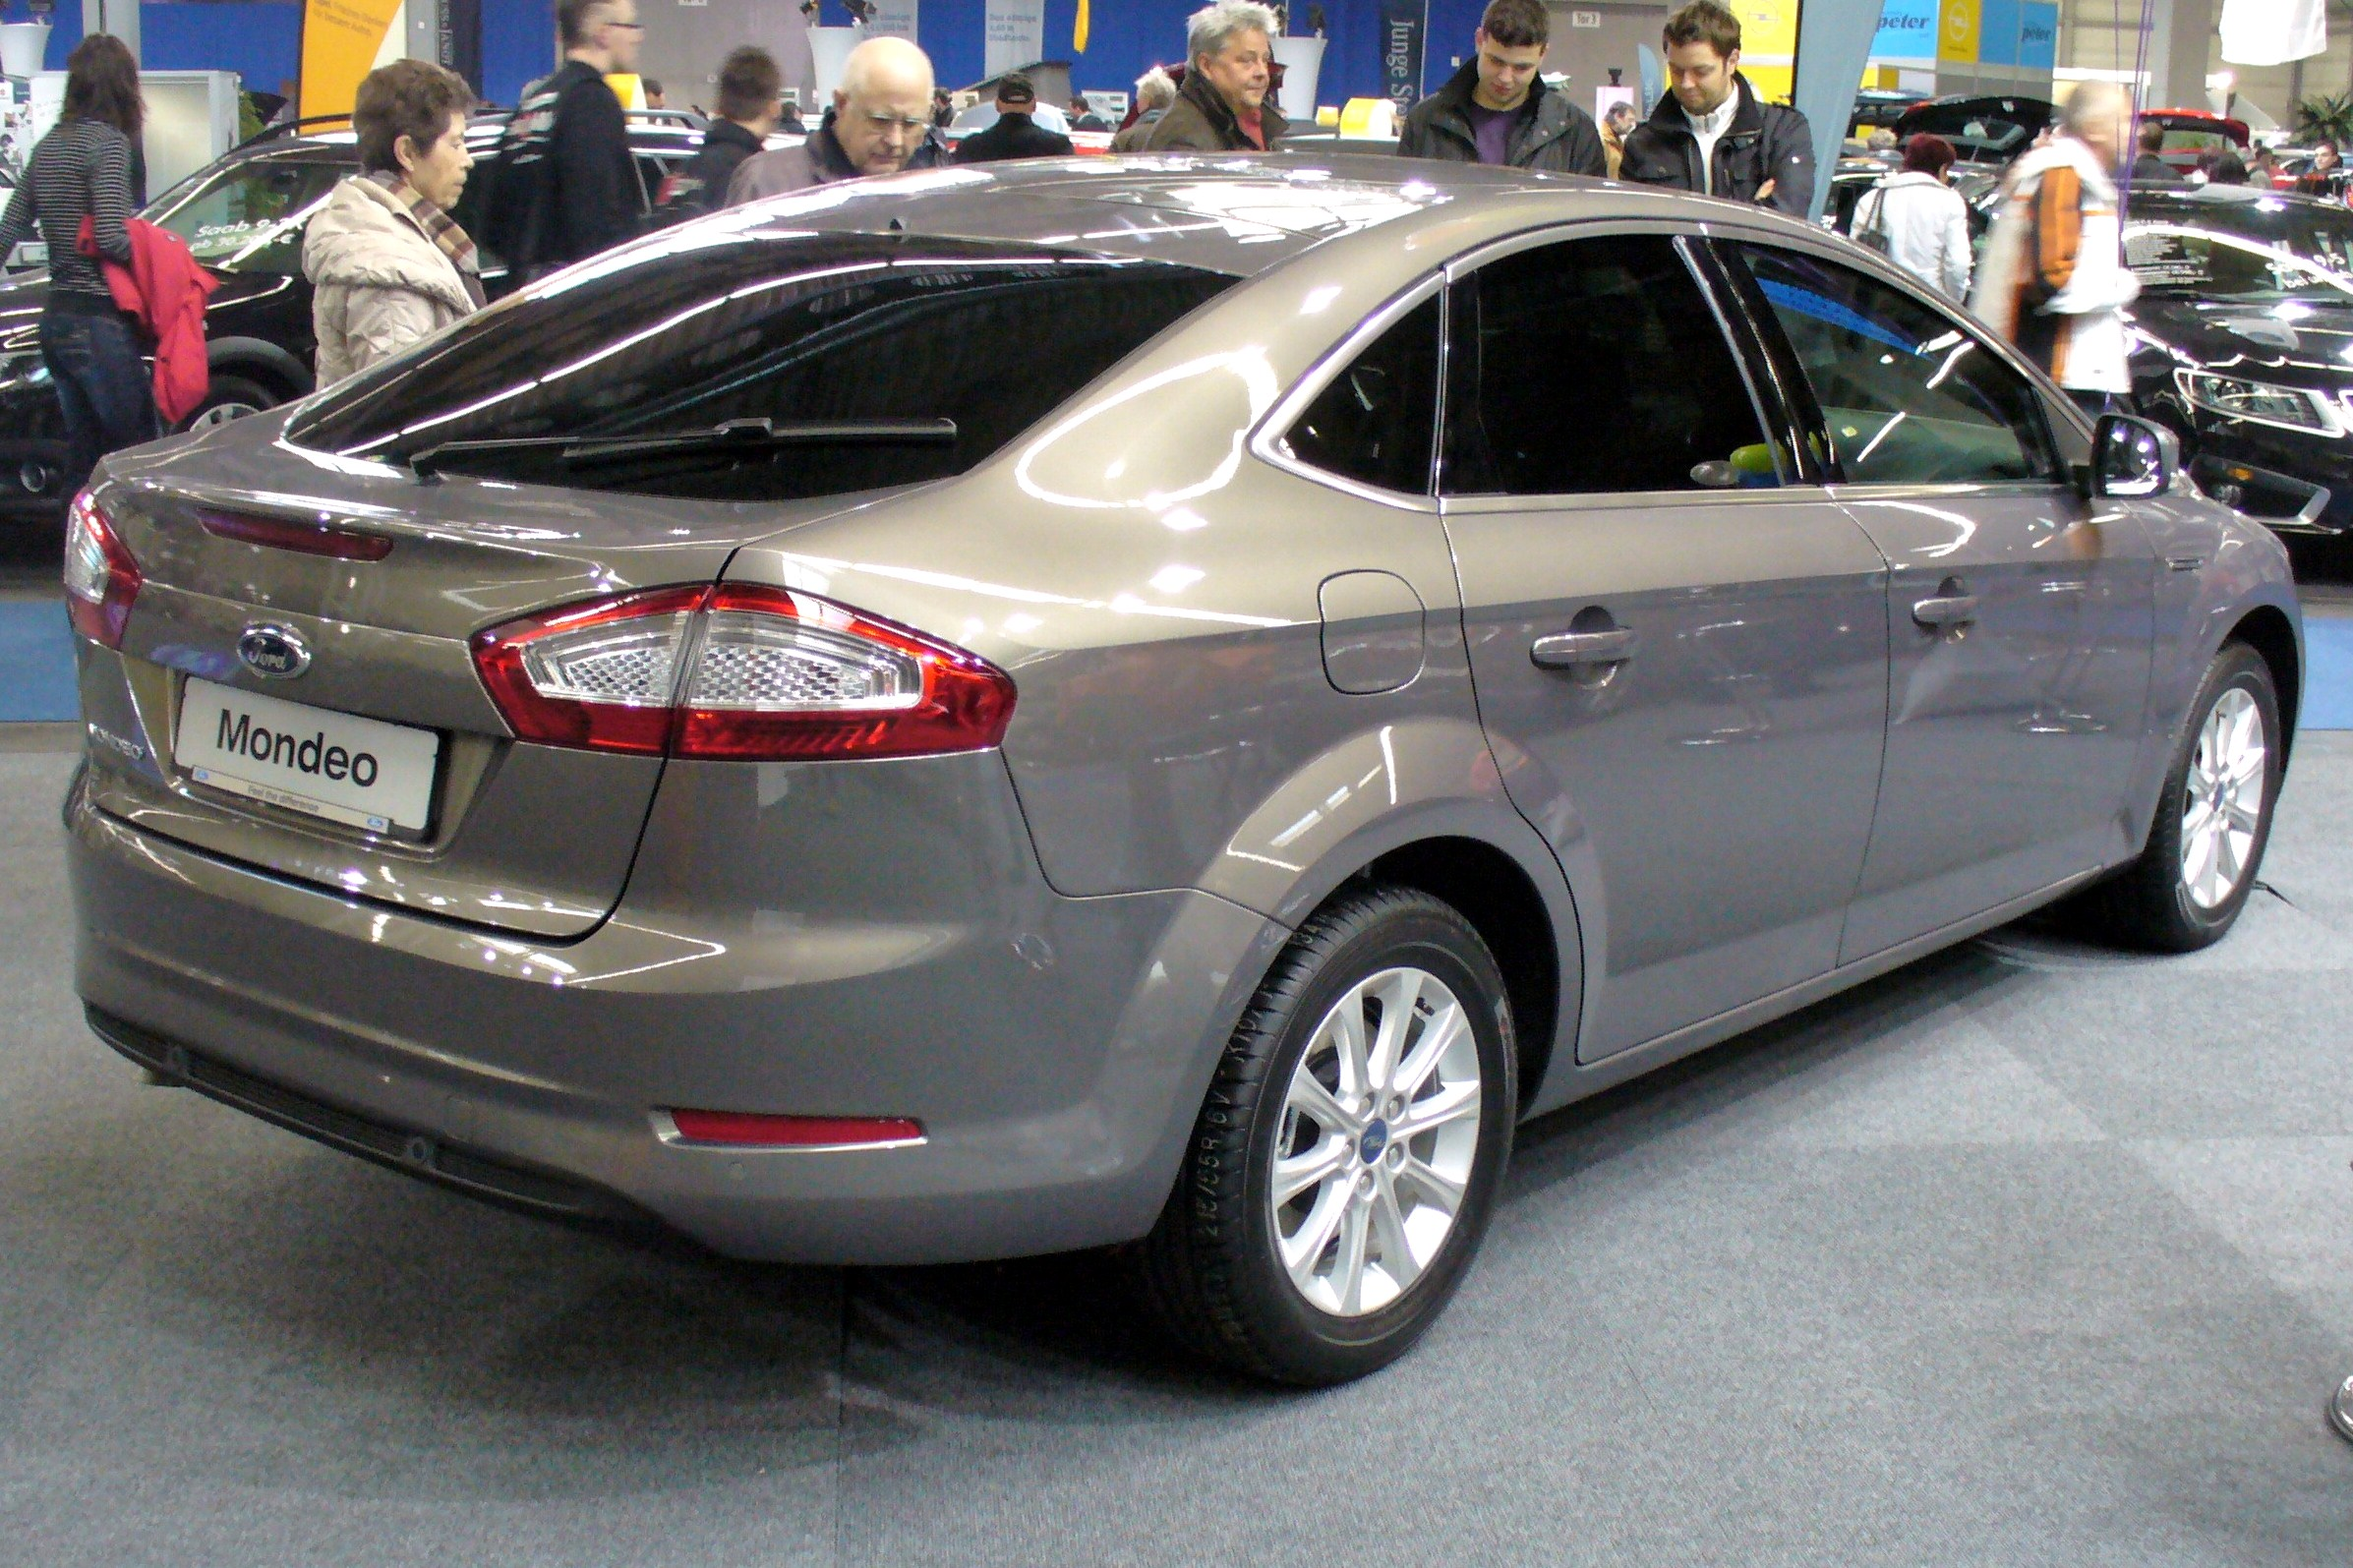 file ford mondeo facelift 2010 heck jpg wikimedia commons. Black Bedroom Furniture Sets. Home Design Ideas